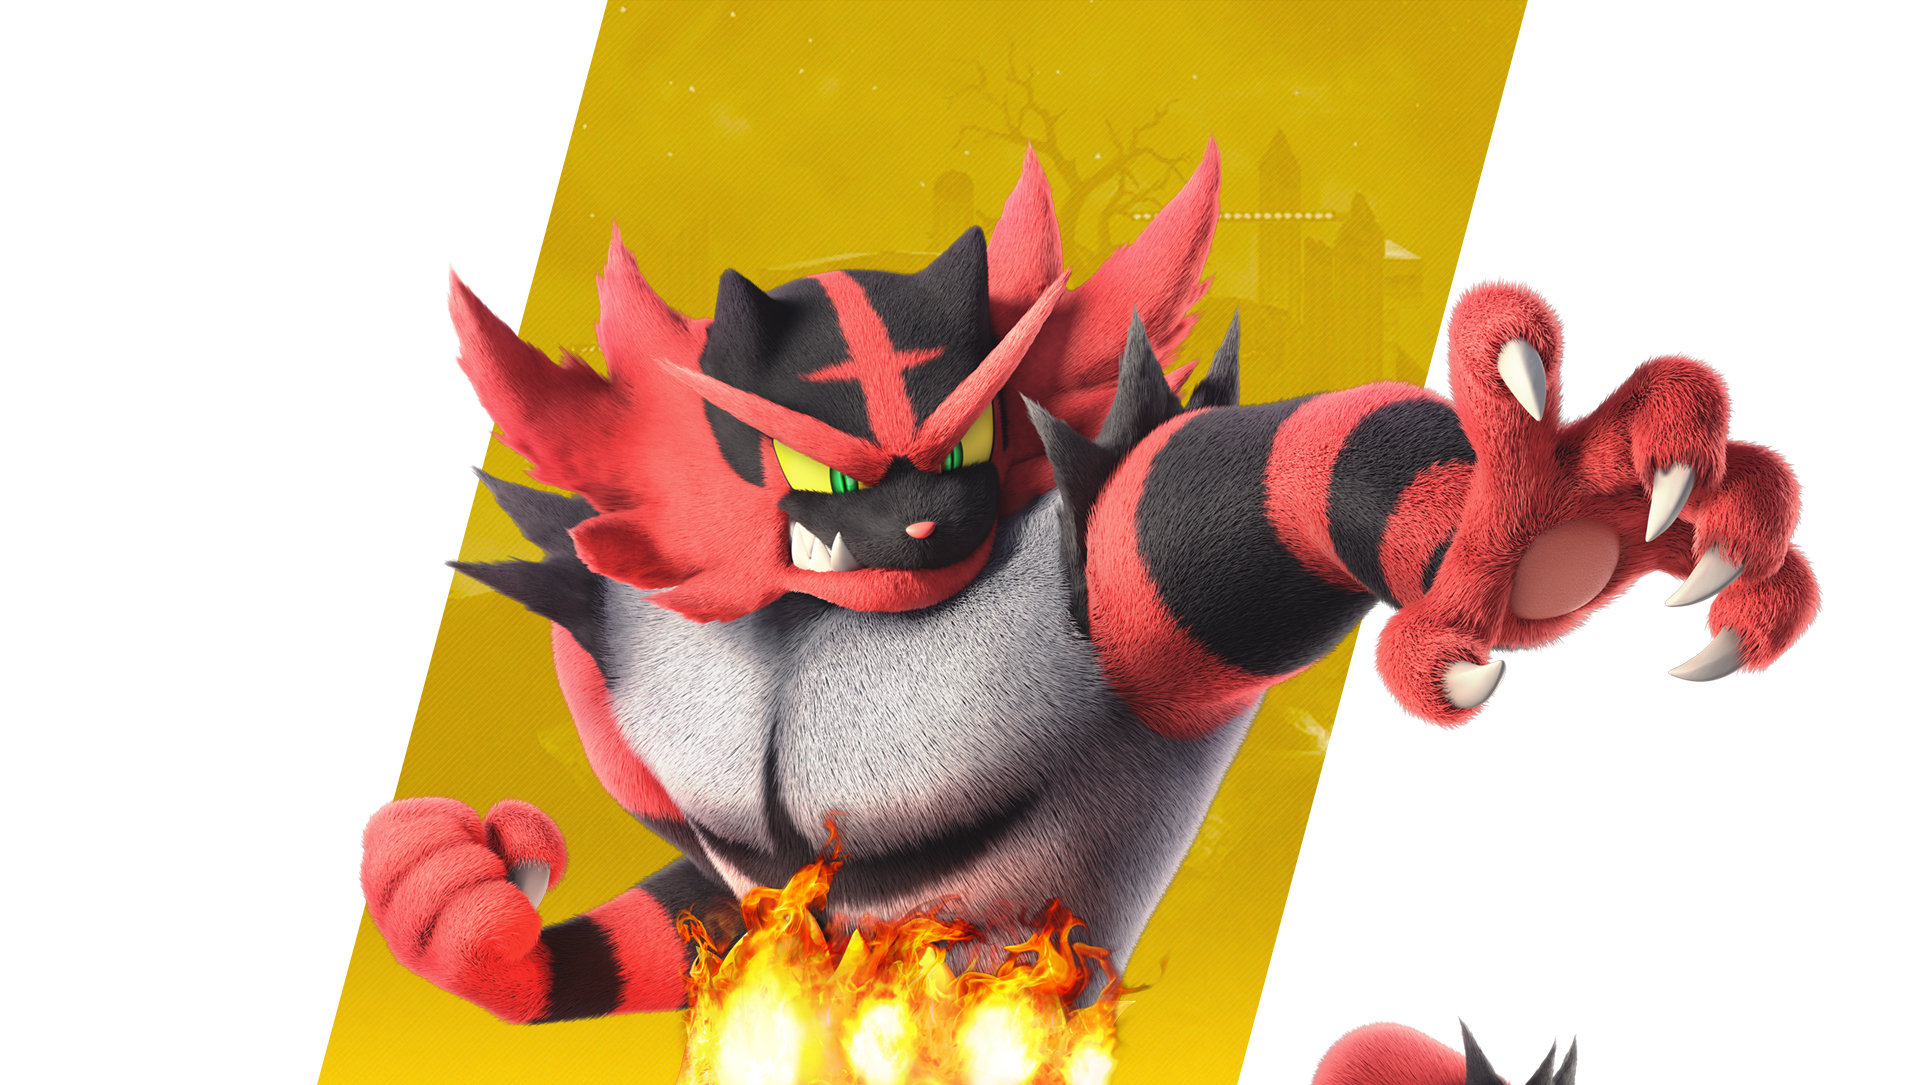 Super Smash Bros Ultimate Incineroar Wallpapers Cat With Monocle